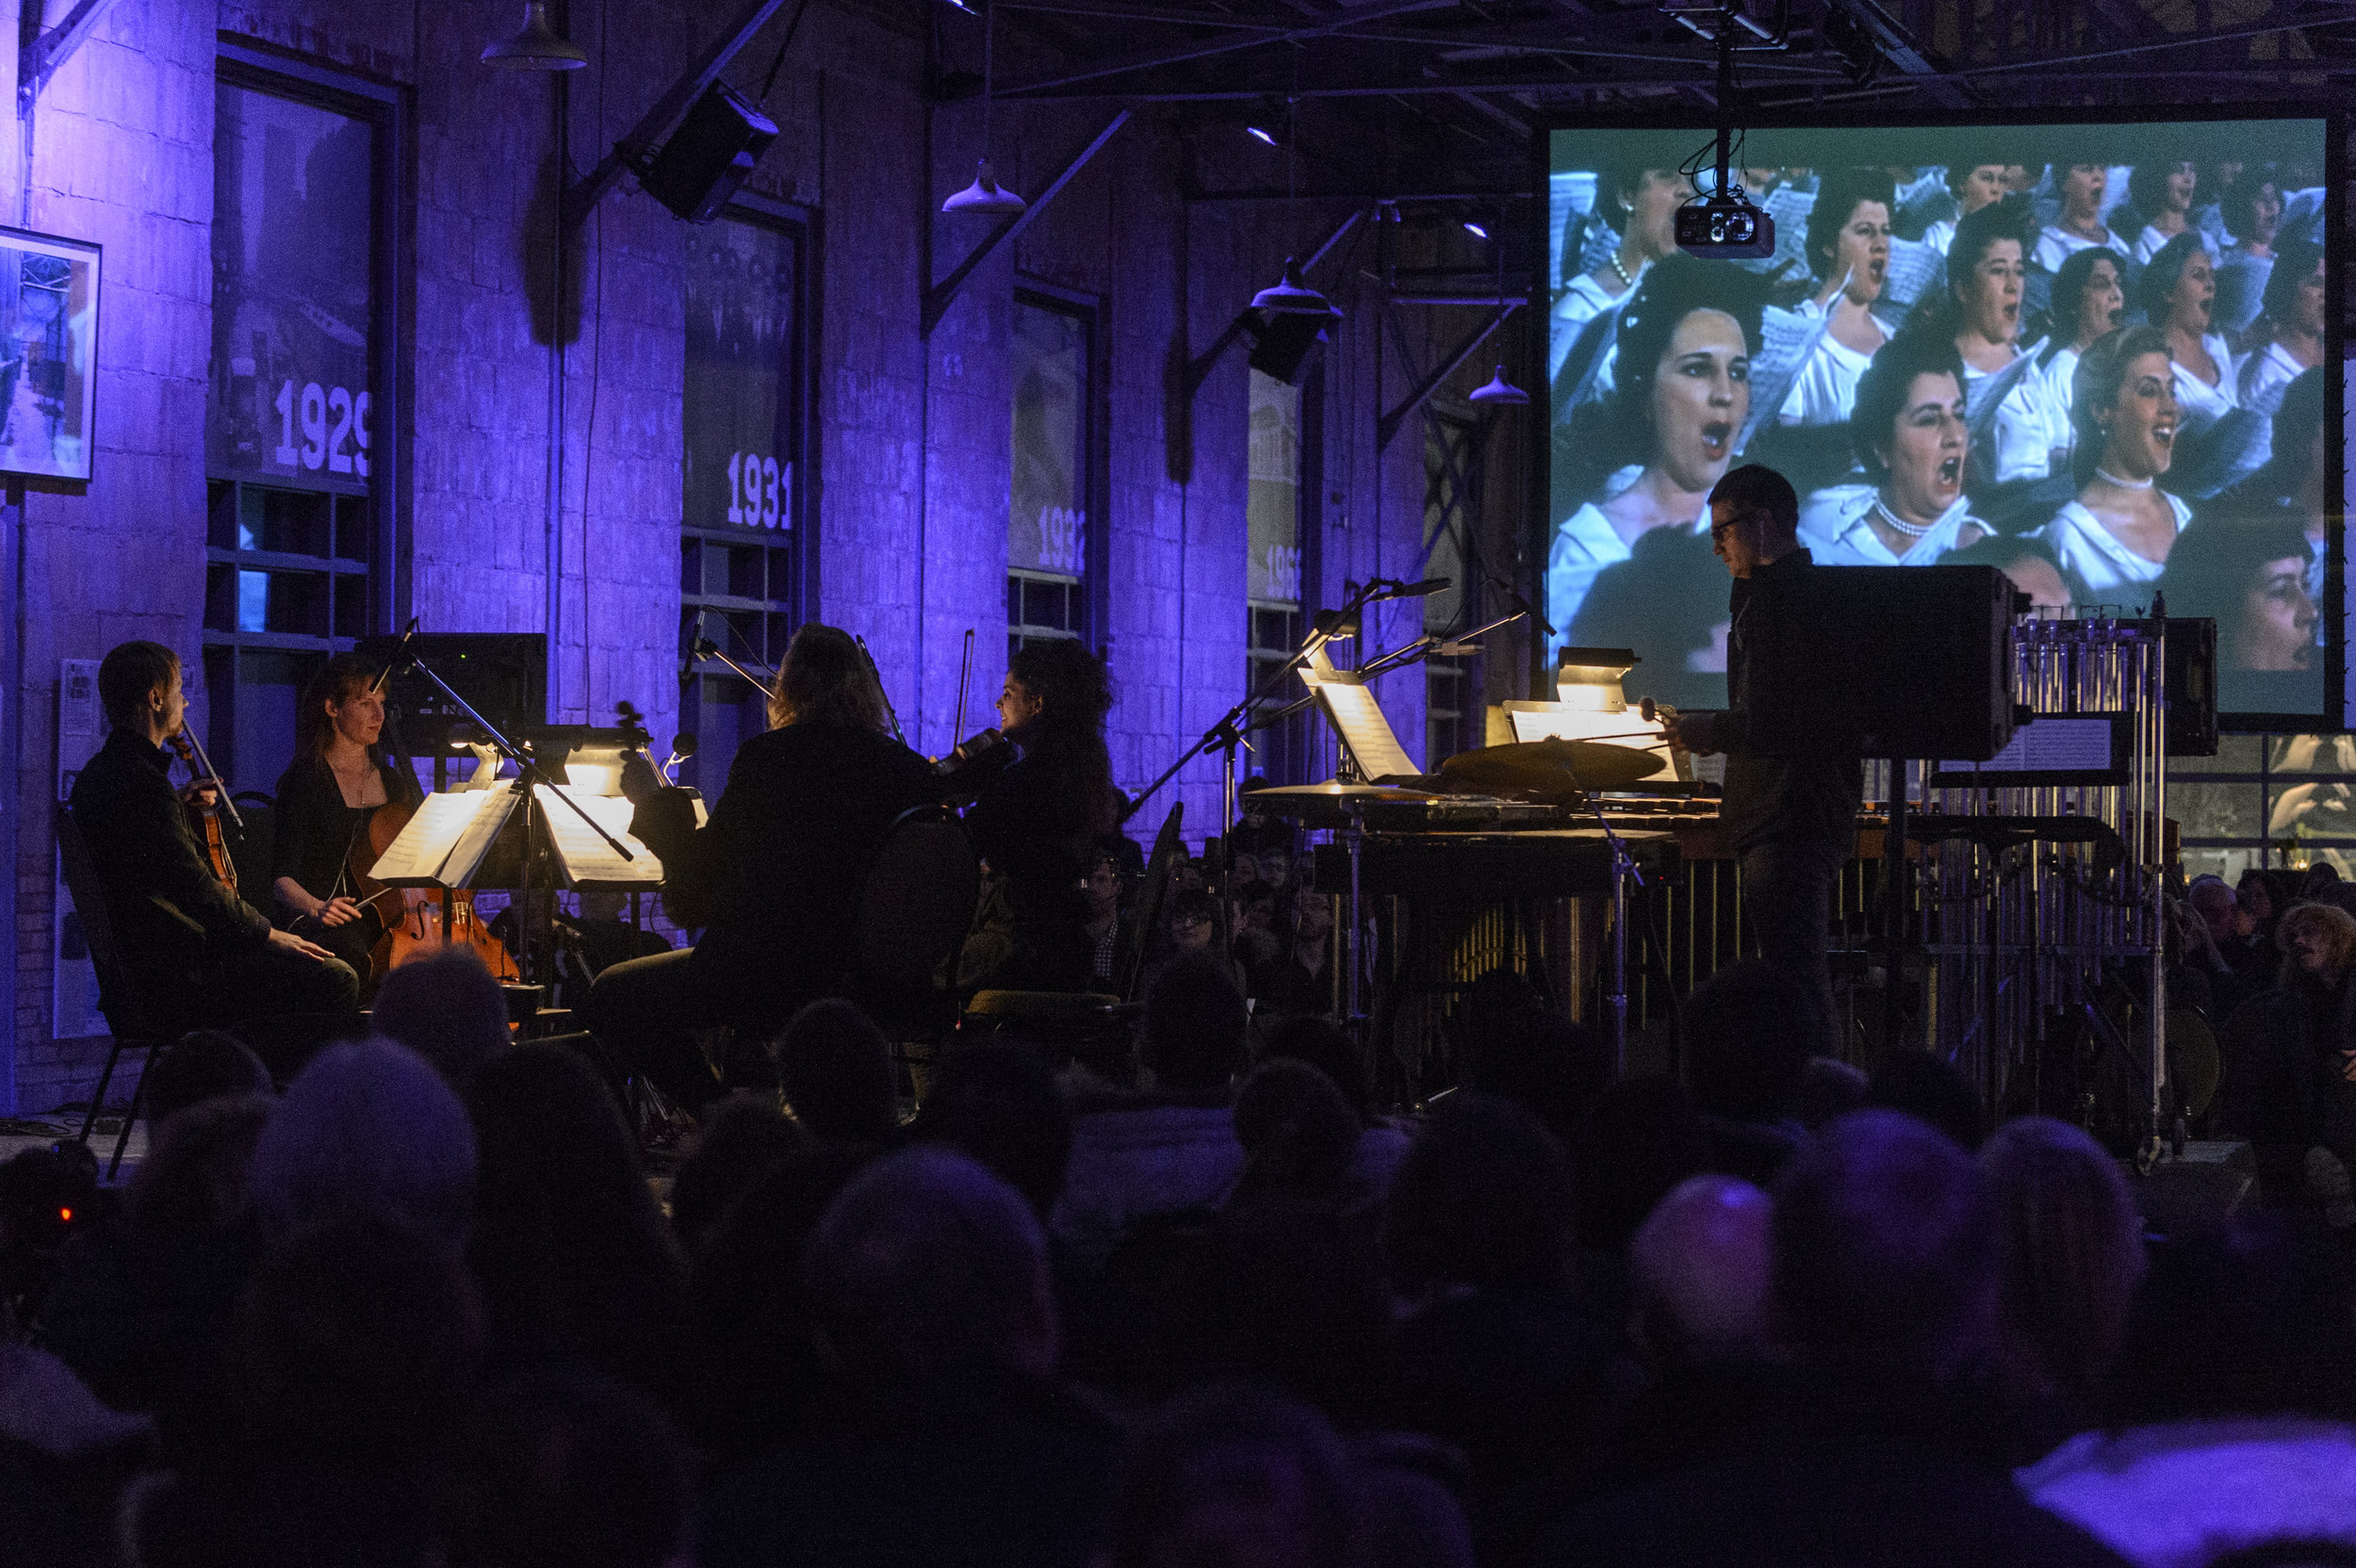 image courtesy Music in the Barns